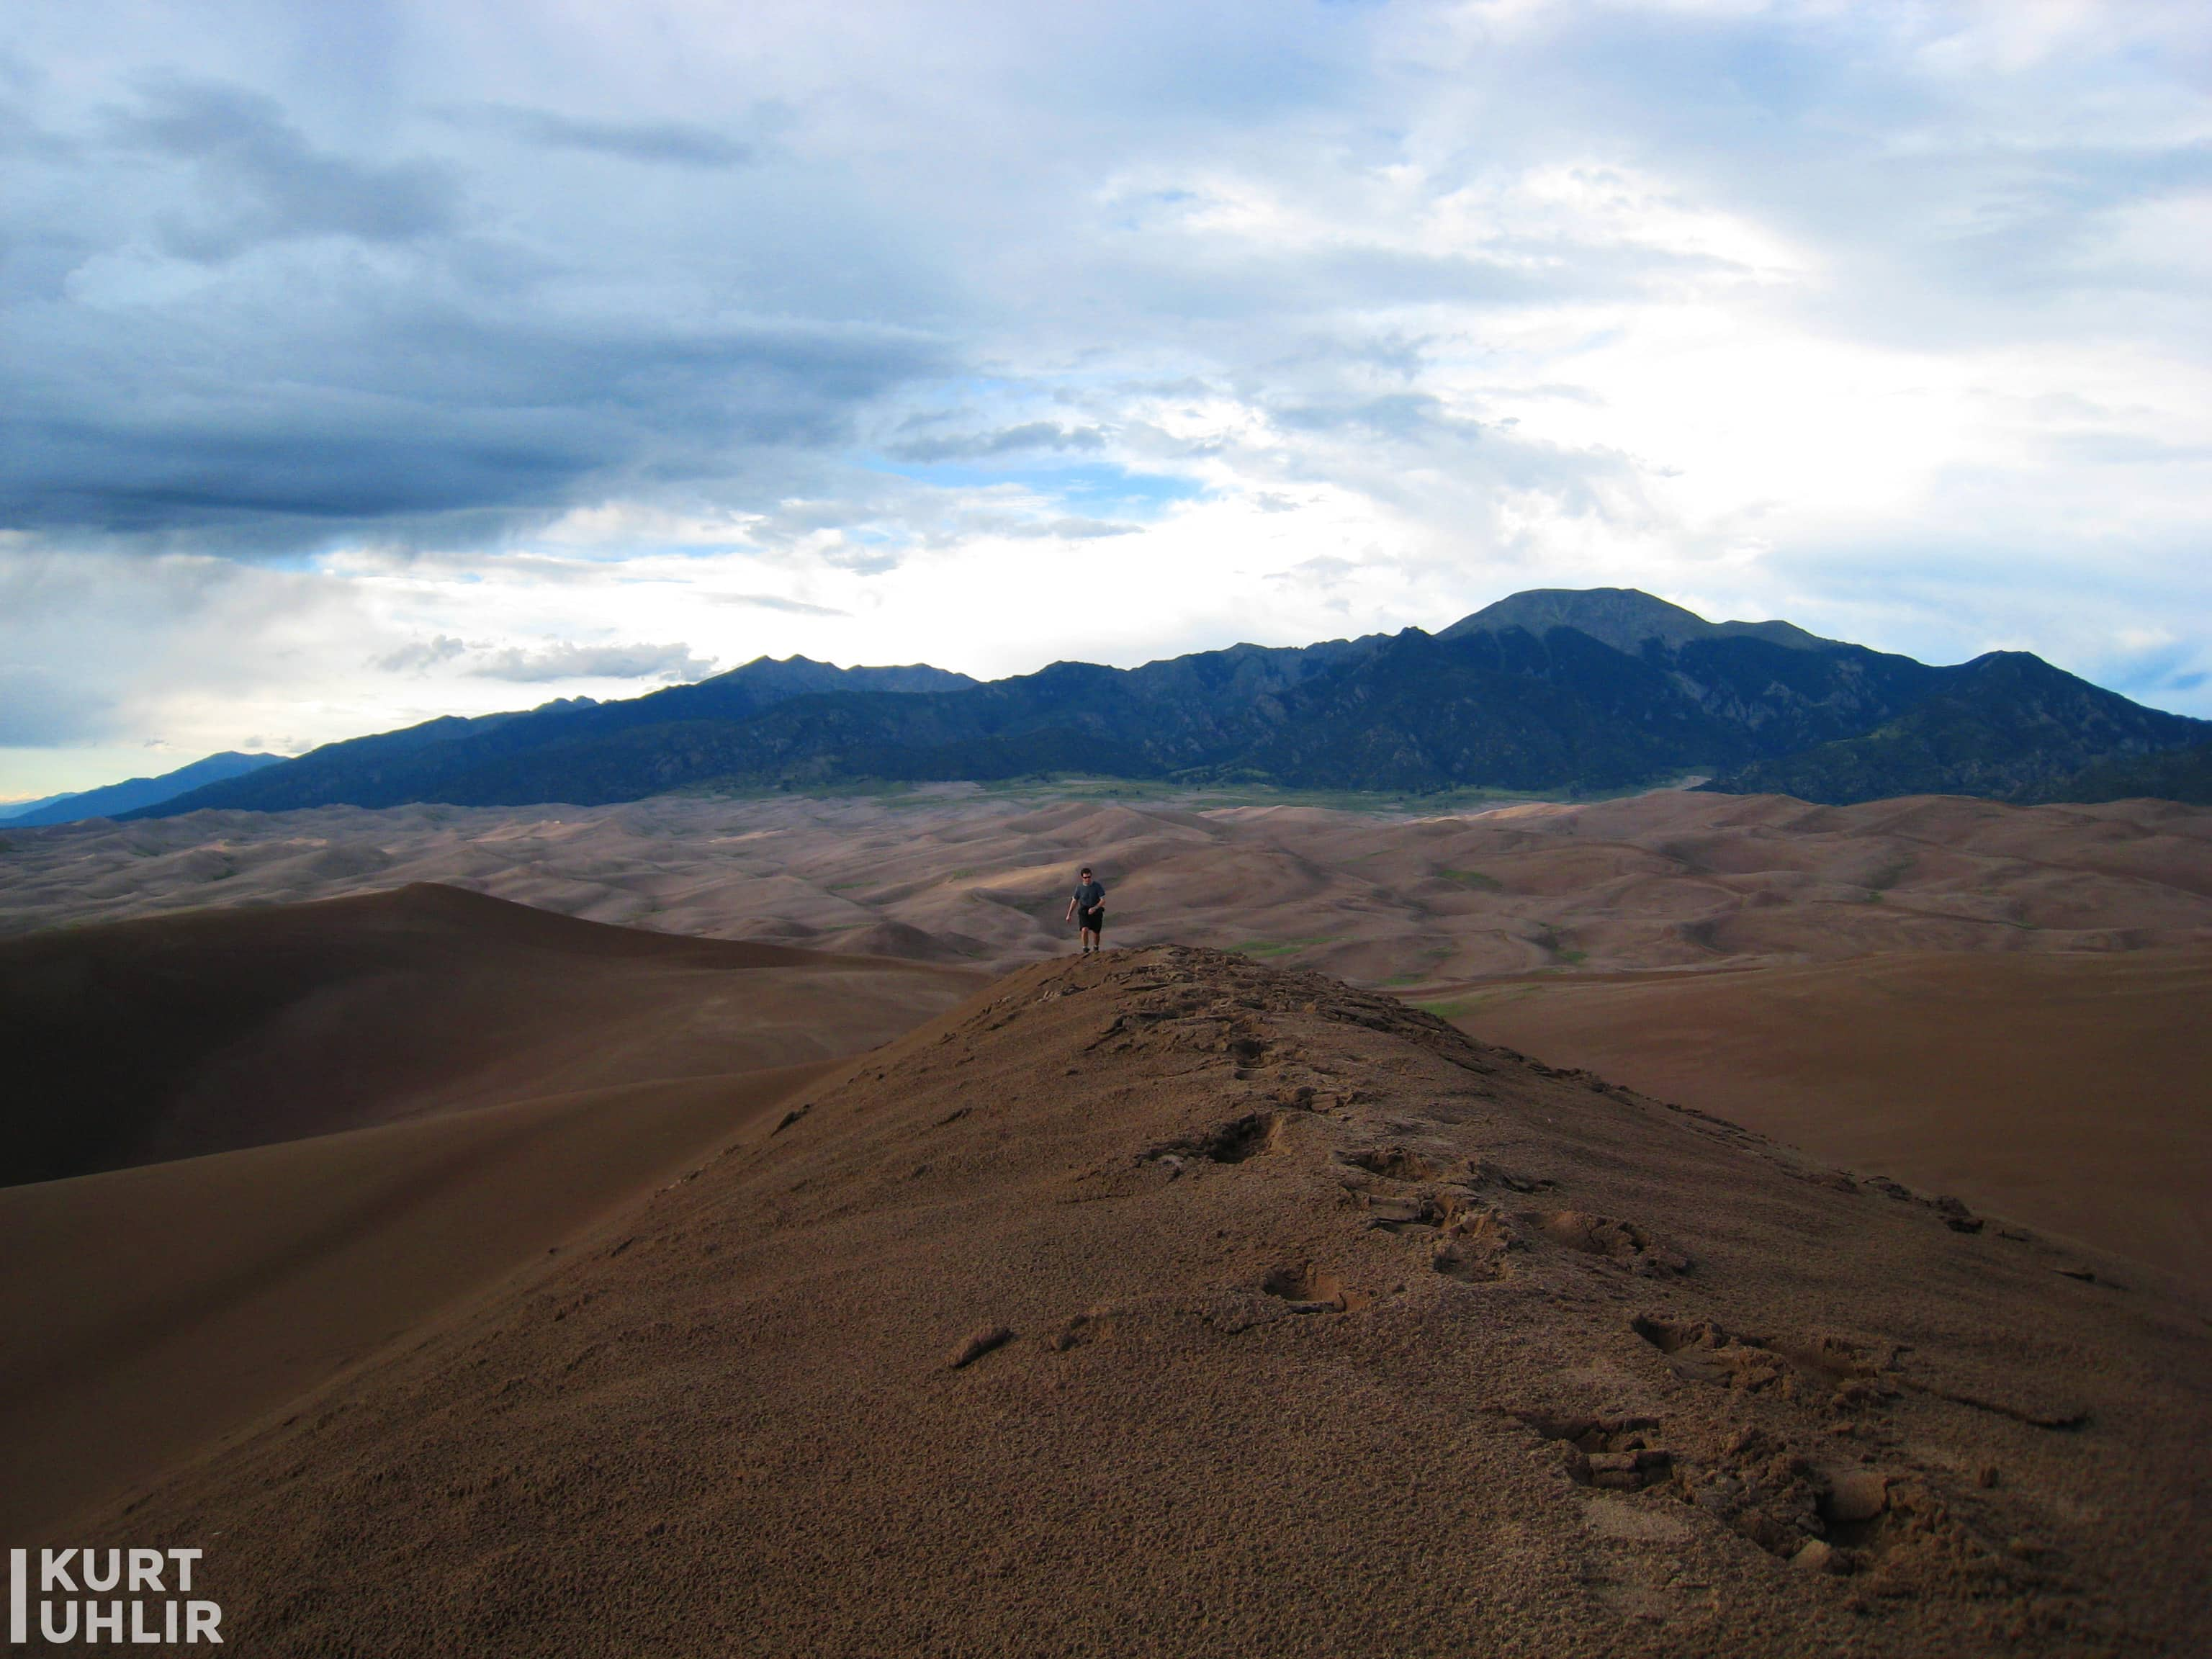 Kurt Uhlir at the top of the dunes at Great Sand Dunes National Park